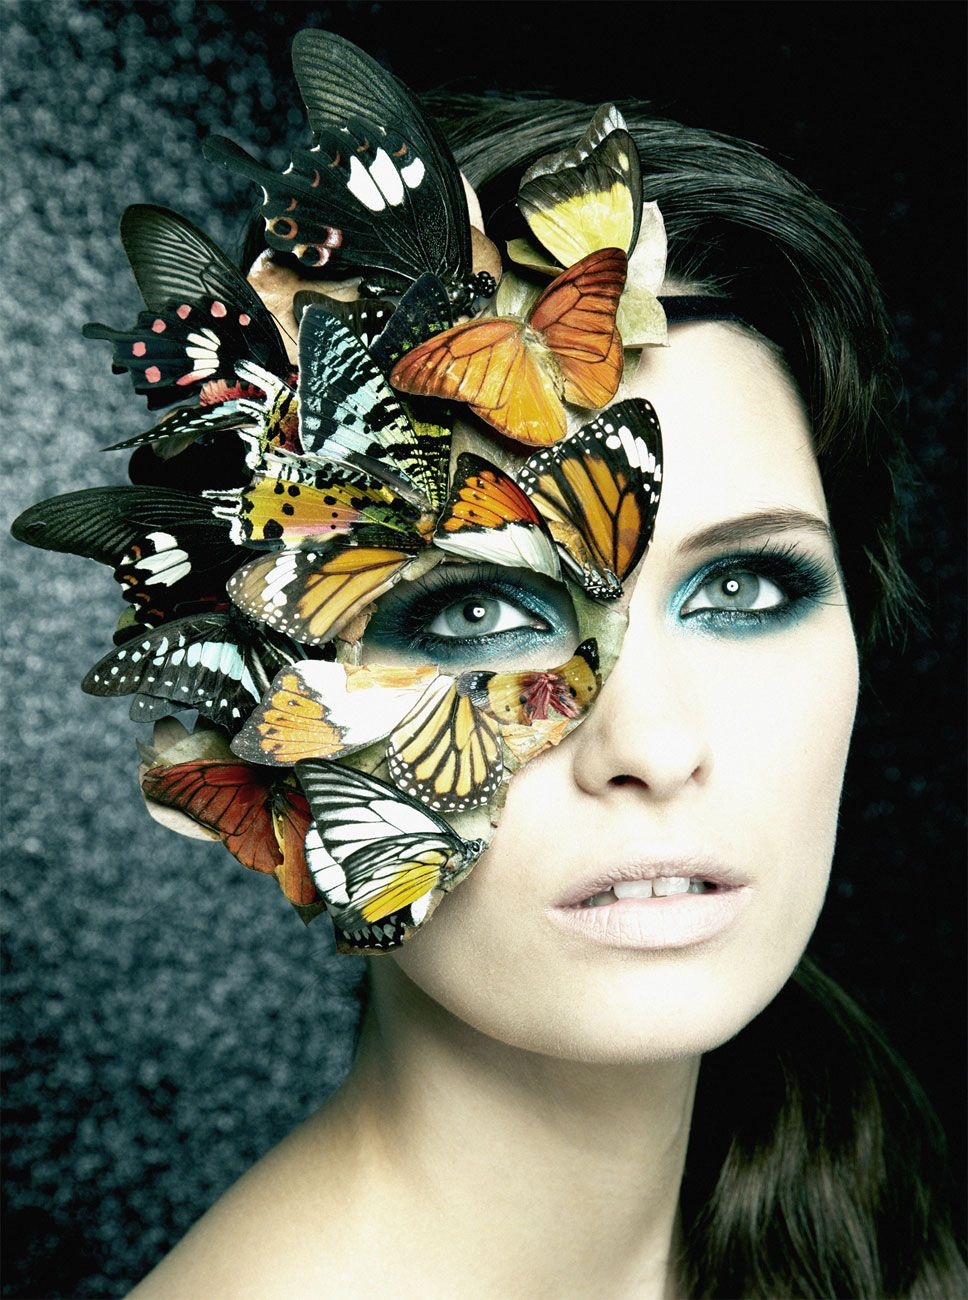 masquerade make-up masks | Single Image - Butterfly mask & Make-up ...